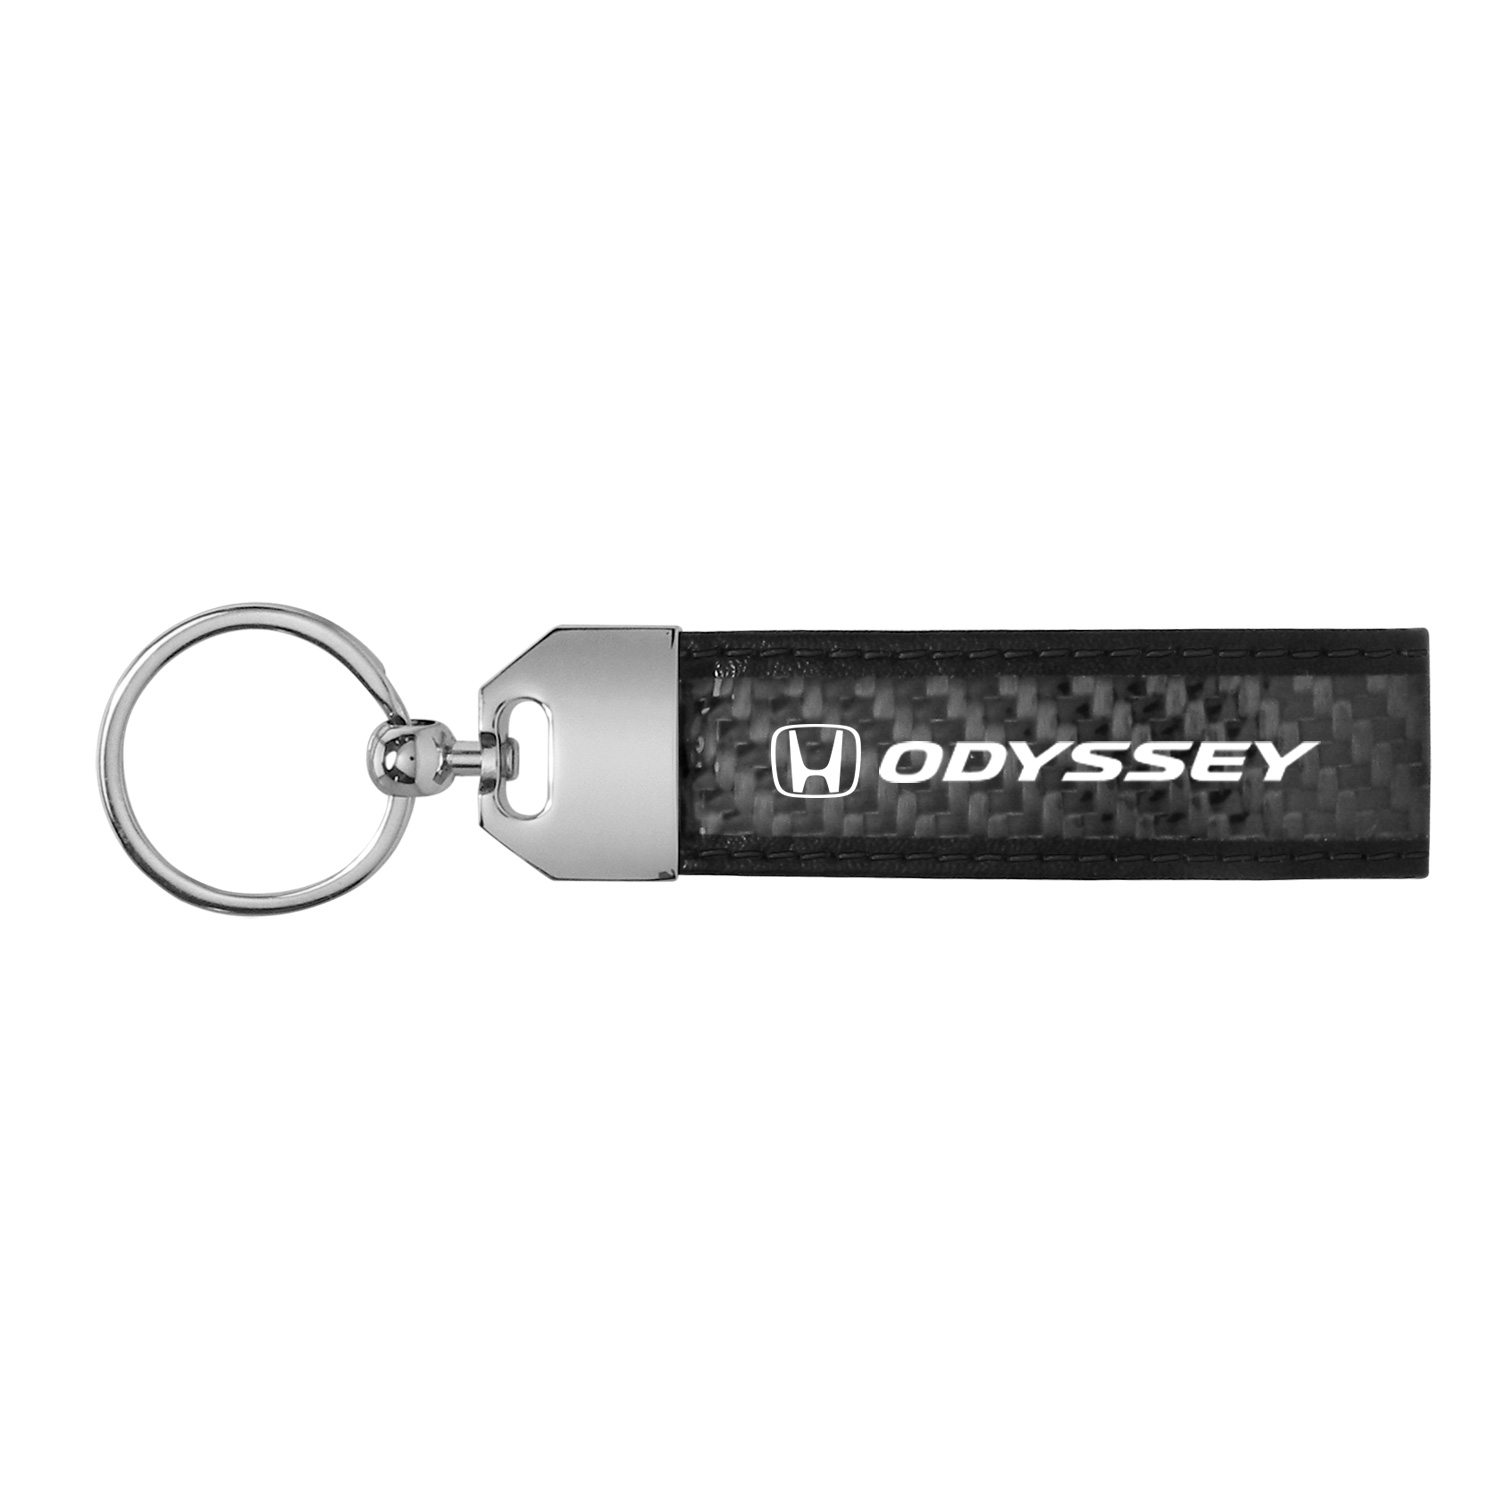 Honda Odyssey Real Carbon Fiber Leather Key Chain with Black Stitching